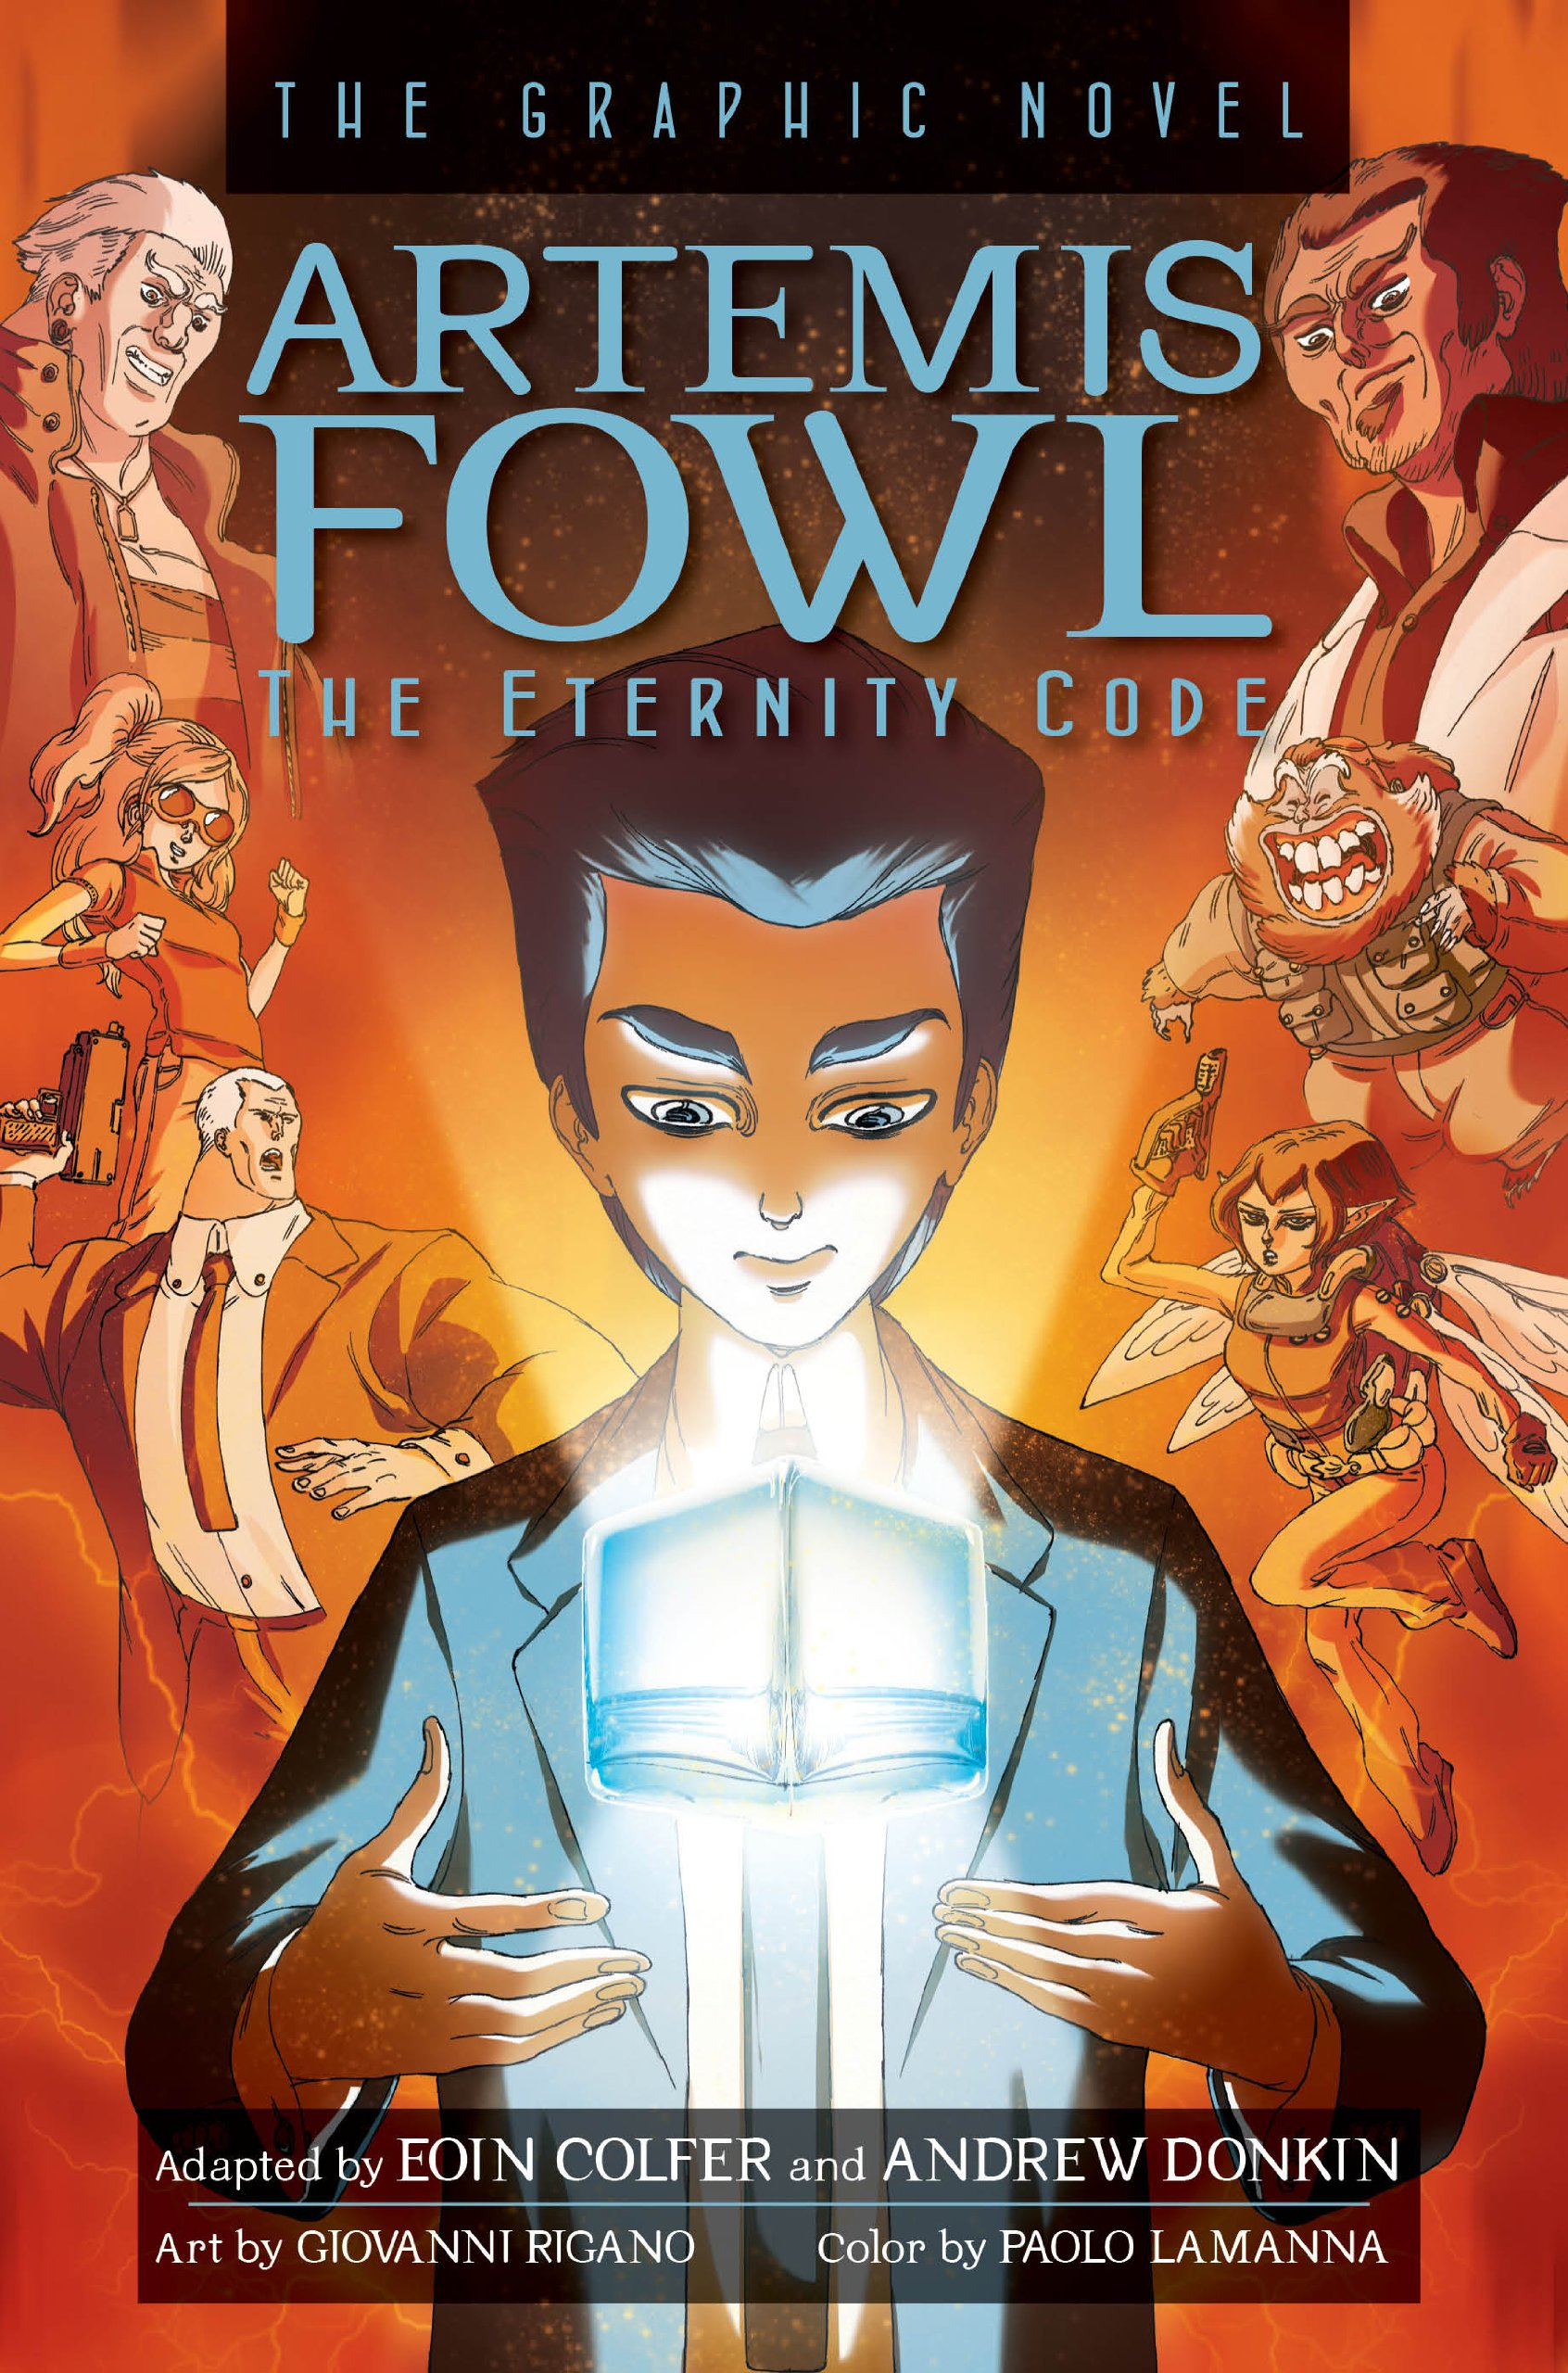 Artemis Fowl The Eternity Code Graphic Novel: Eoin Colfer, Andrew Donkin,  Giovanni Rigano, Paolo Lamanna: 9781423145776: Amazon: Books